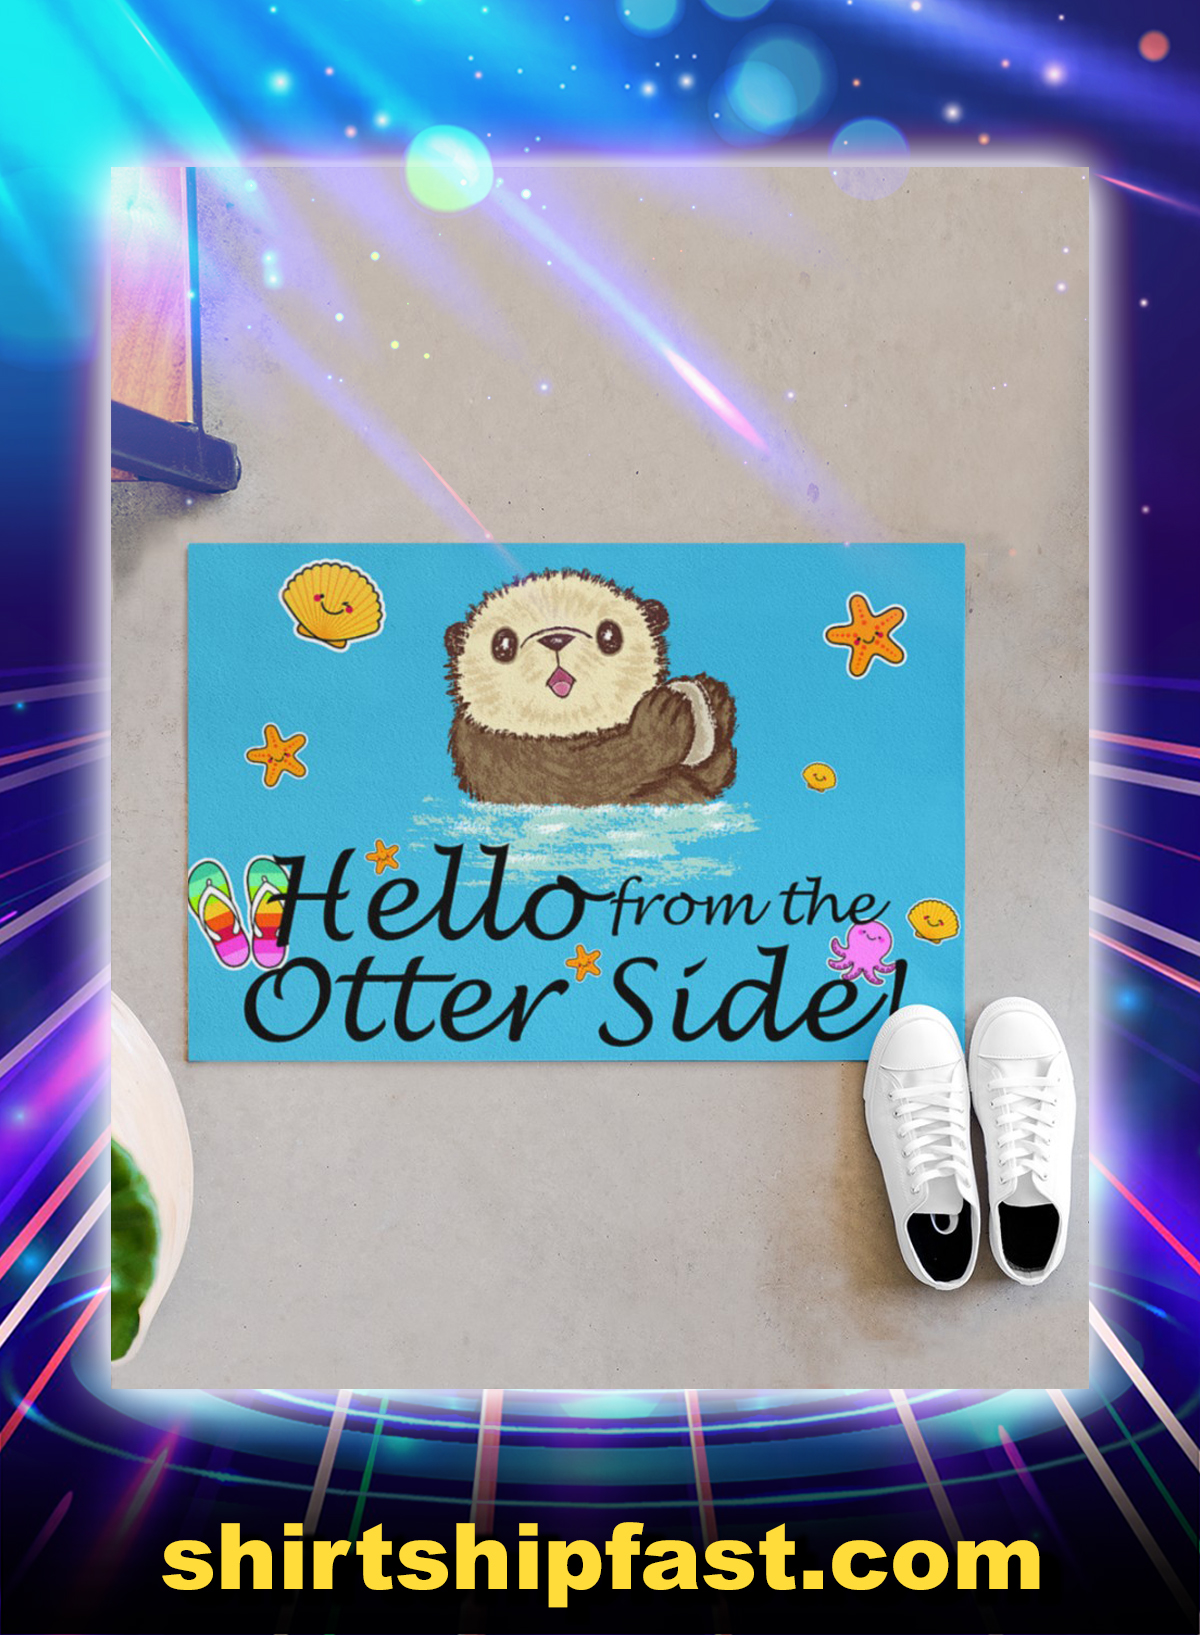 Hello from the otter side doormat - Picture 1